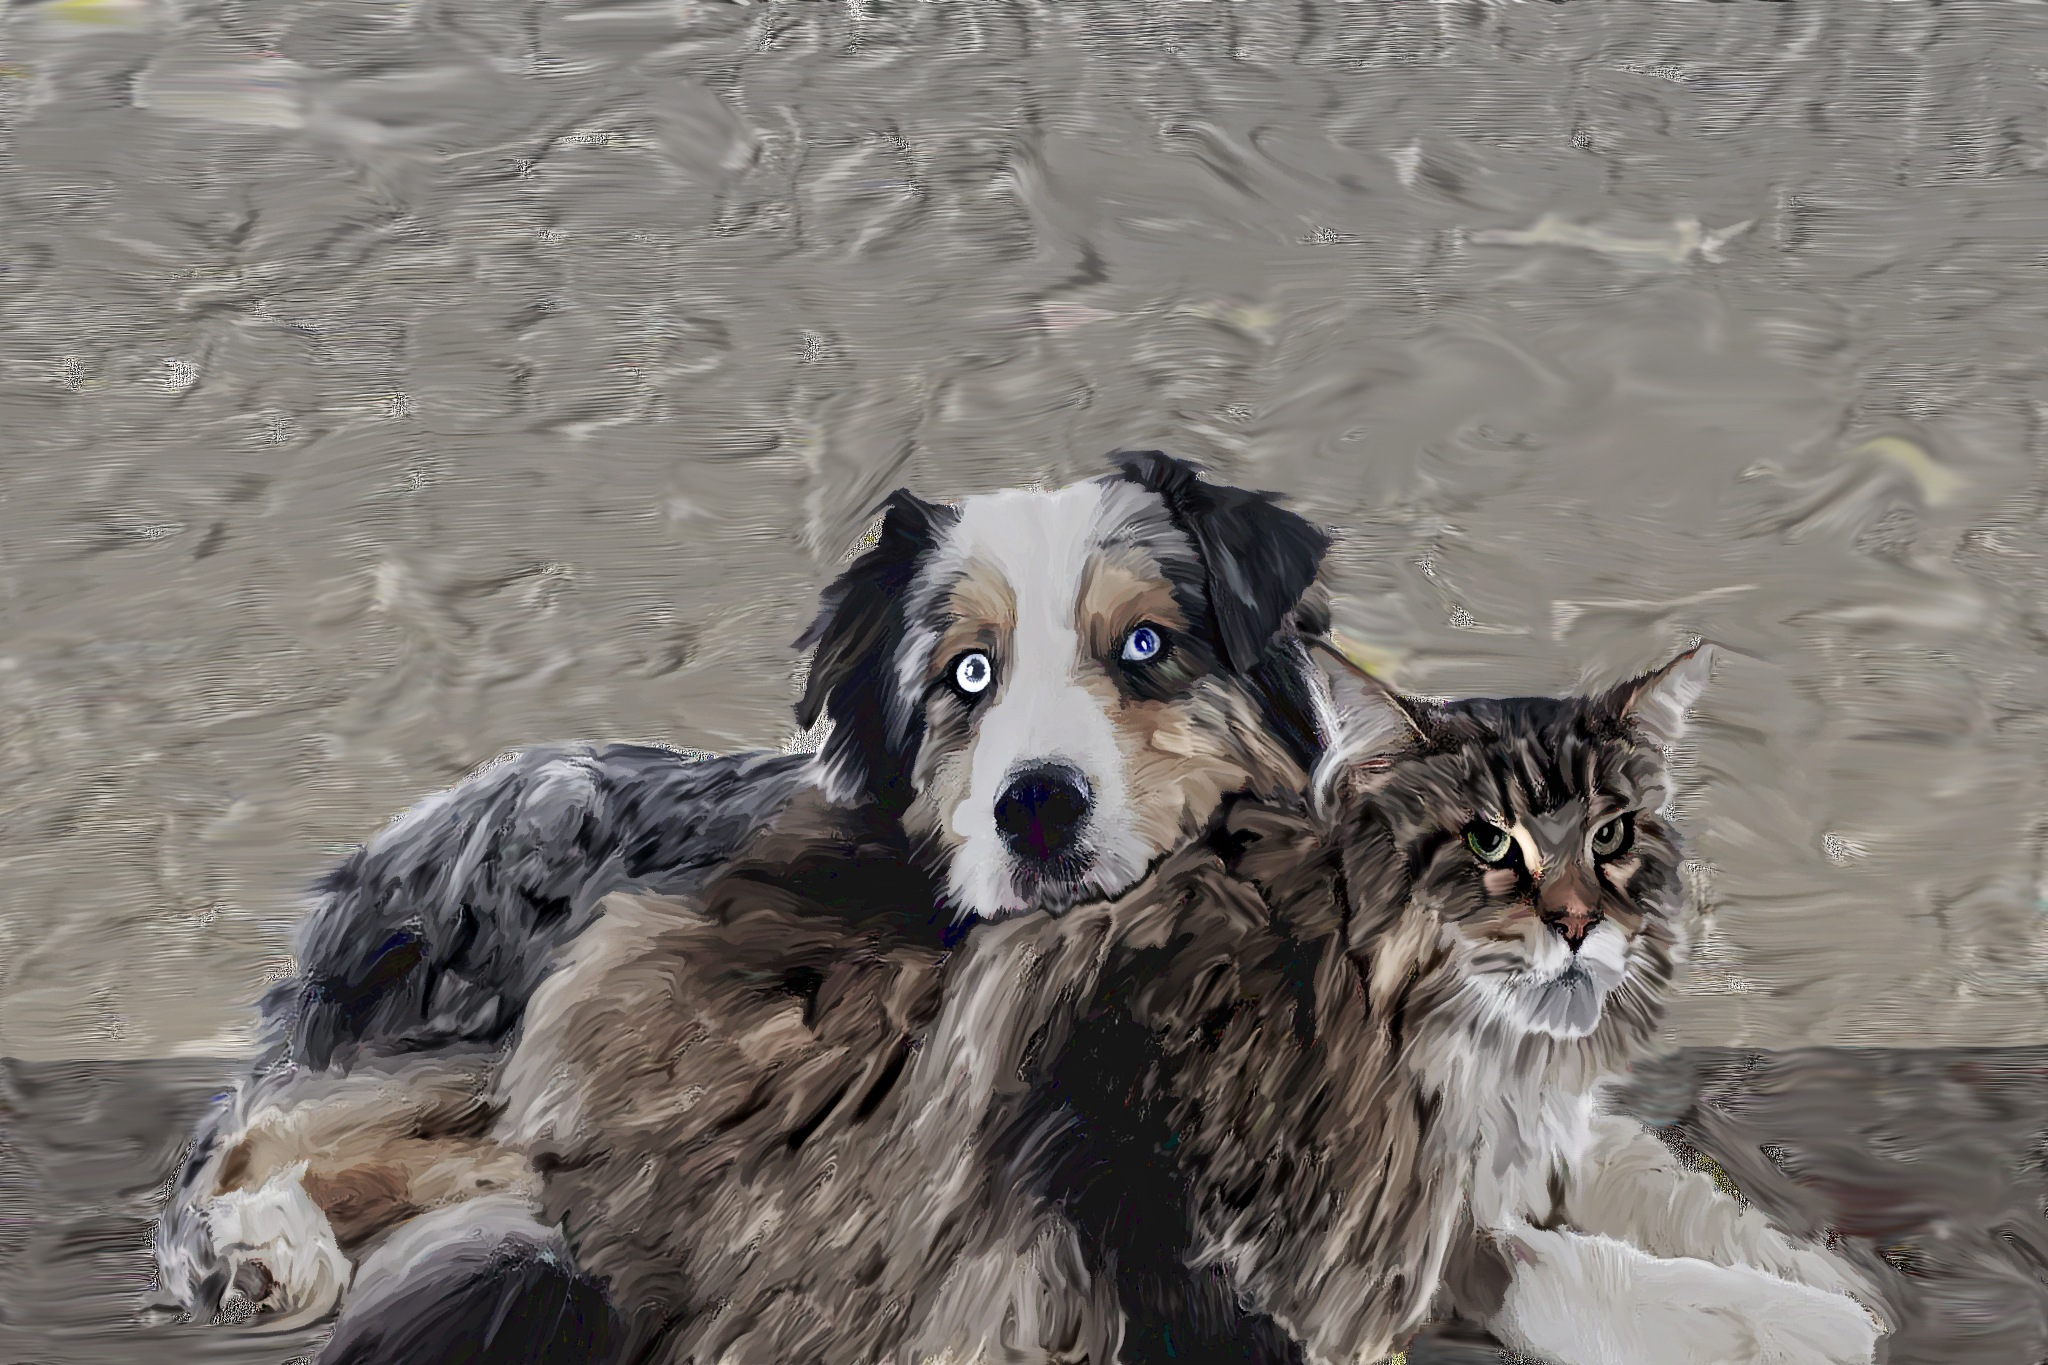 best of friends cat and dog together by brucemoore169